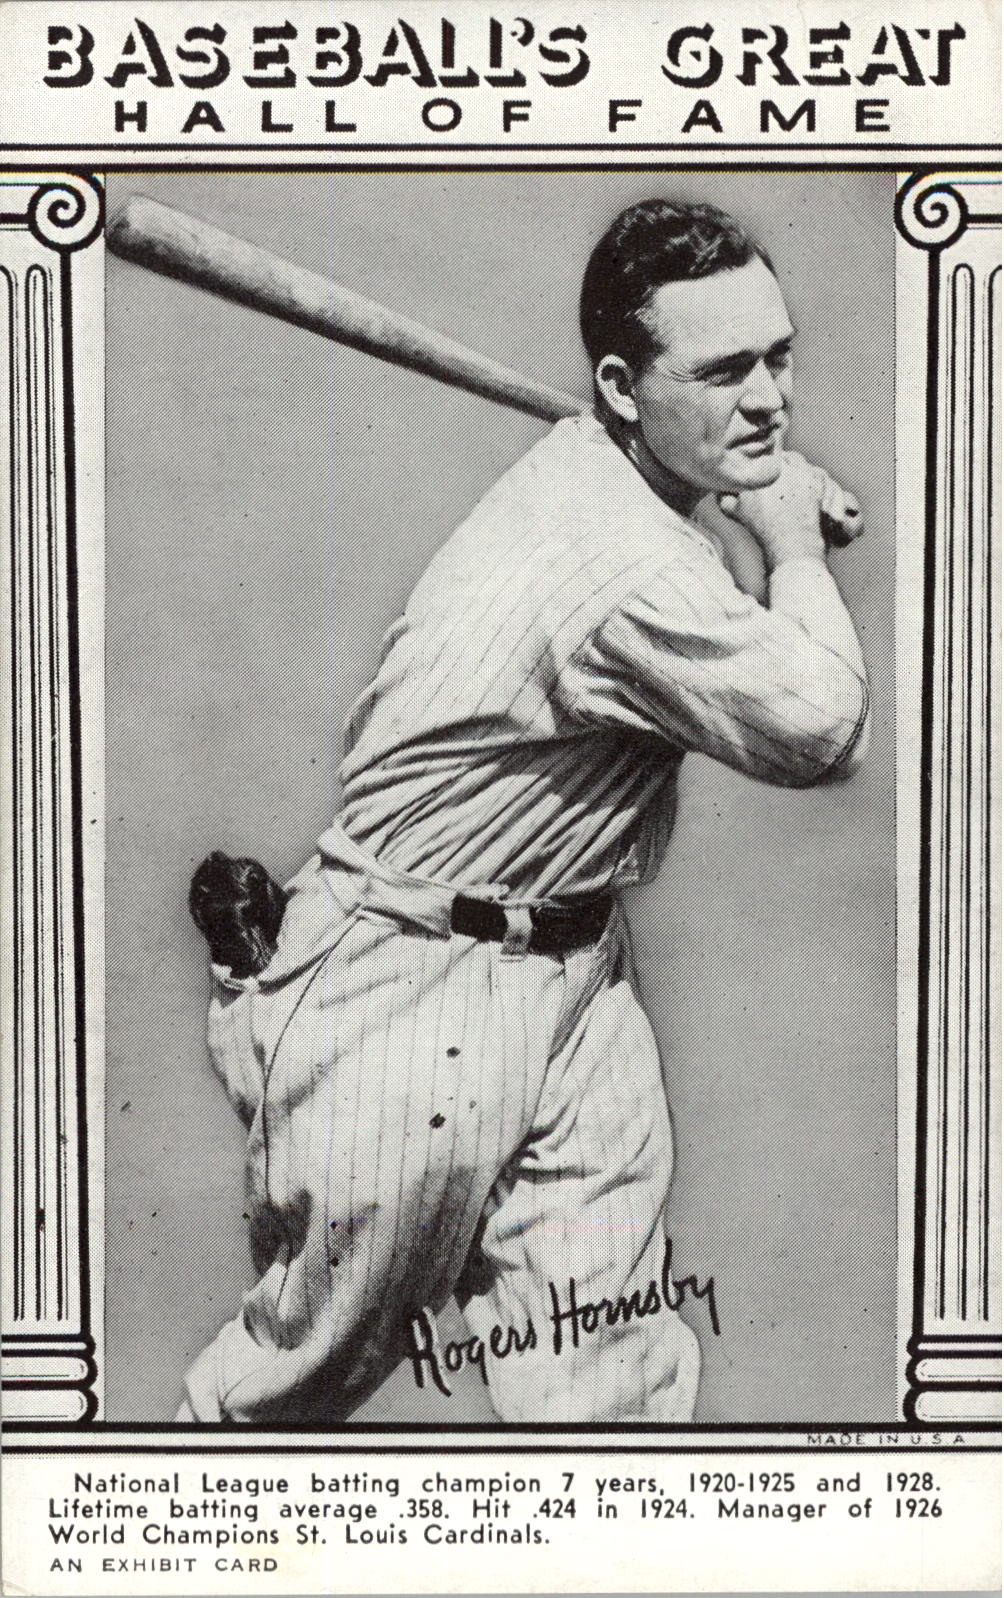 1948 Exhibit Hall of Fame #15 Rogers Hornsby